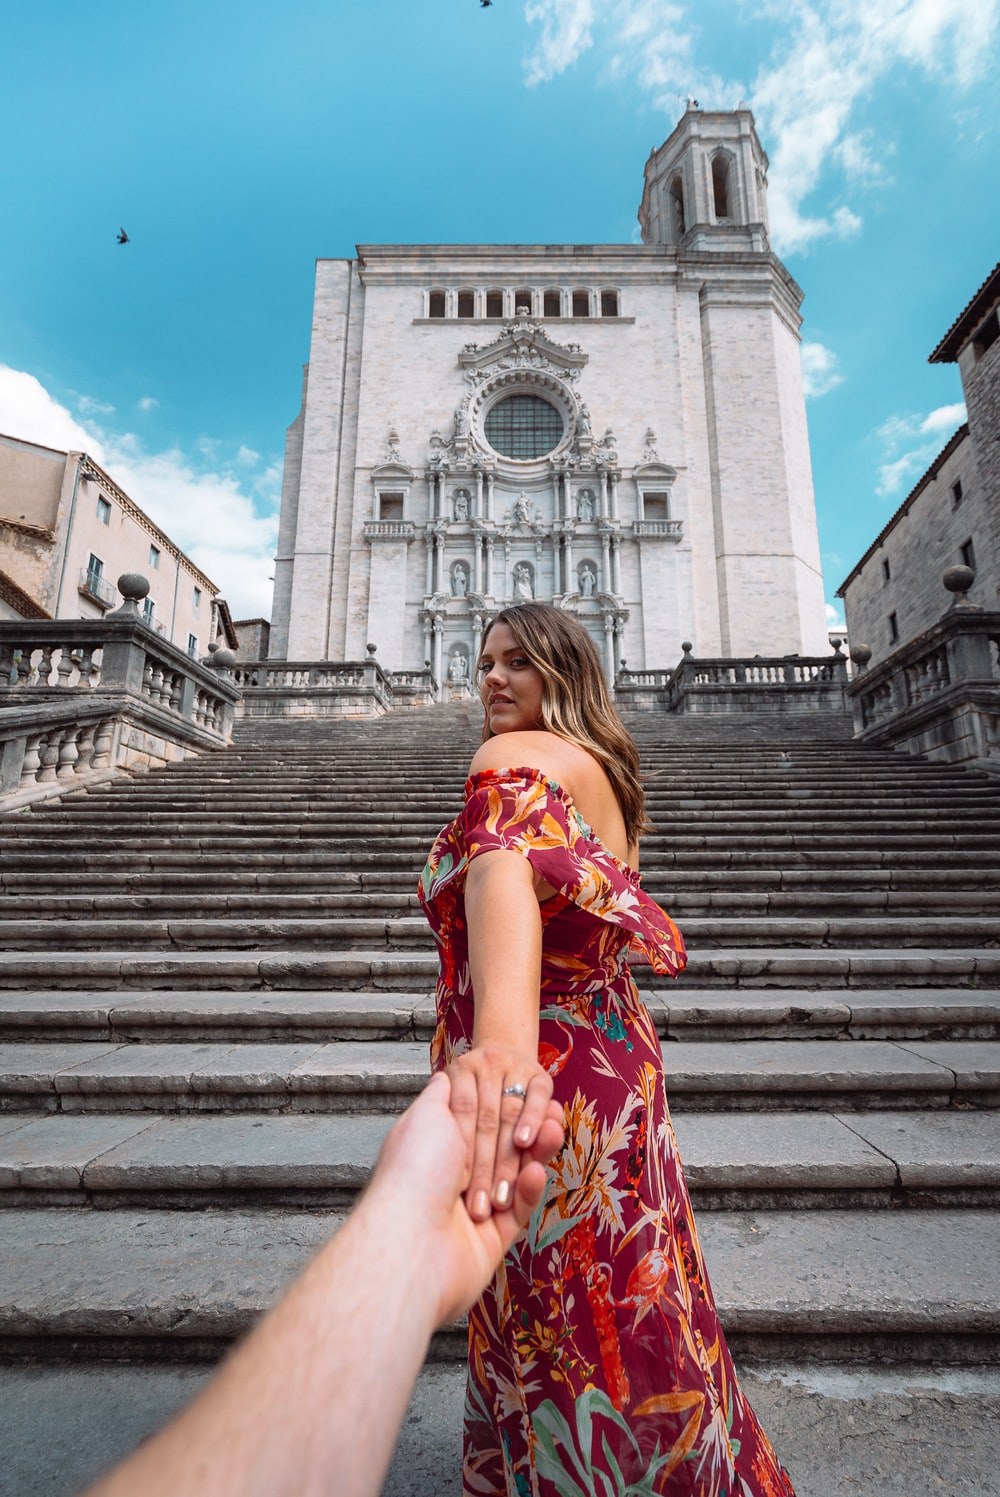 woman in red and white floral dress sitting on stairs